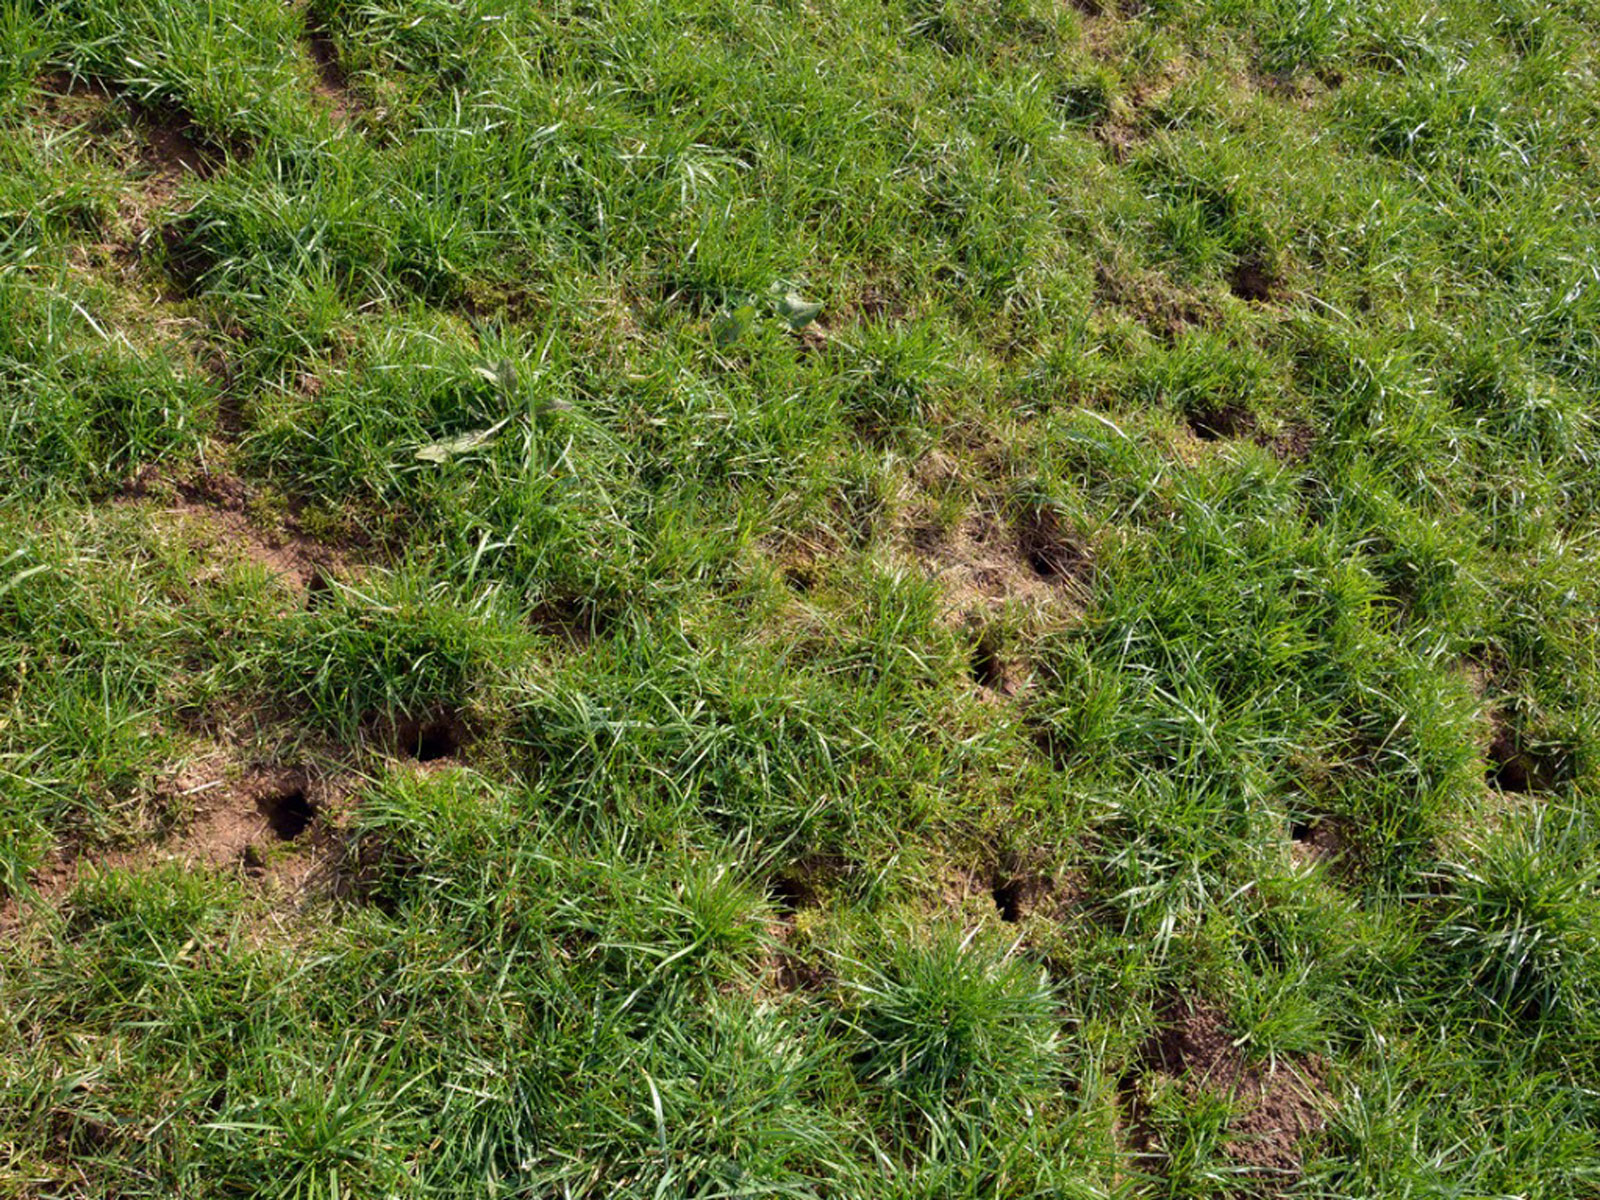 Small Holes In Yards - Tips For Identifying Holes ...